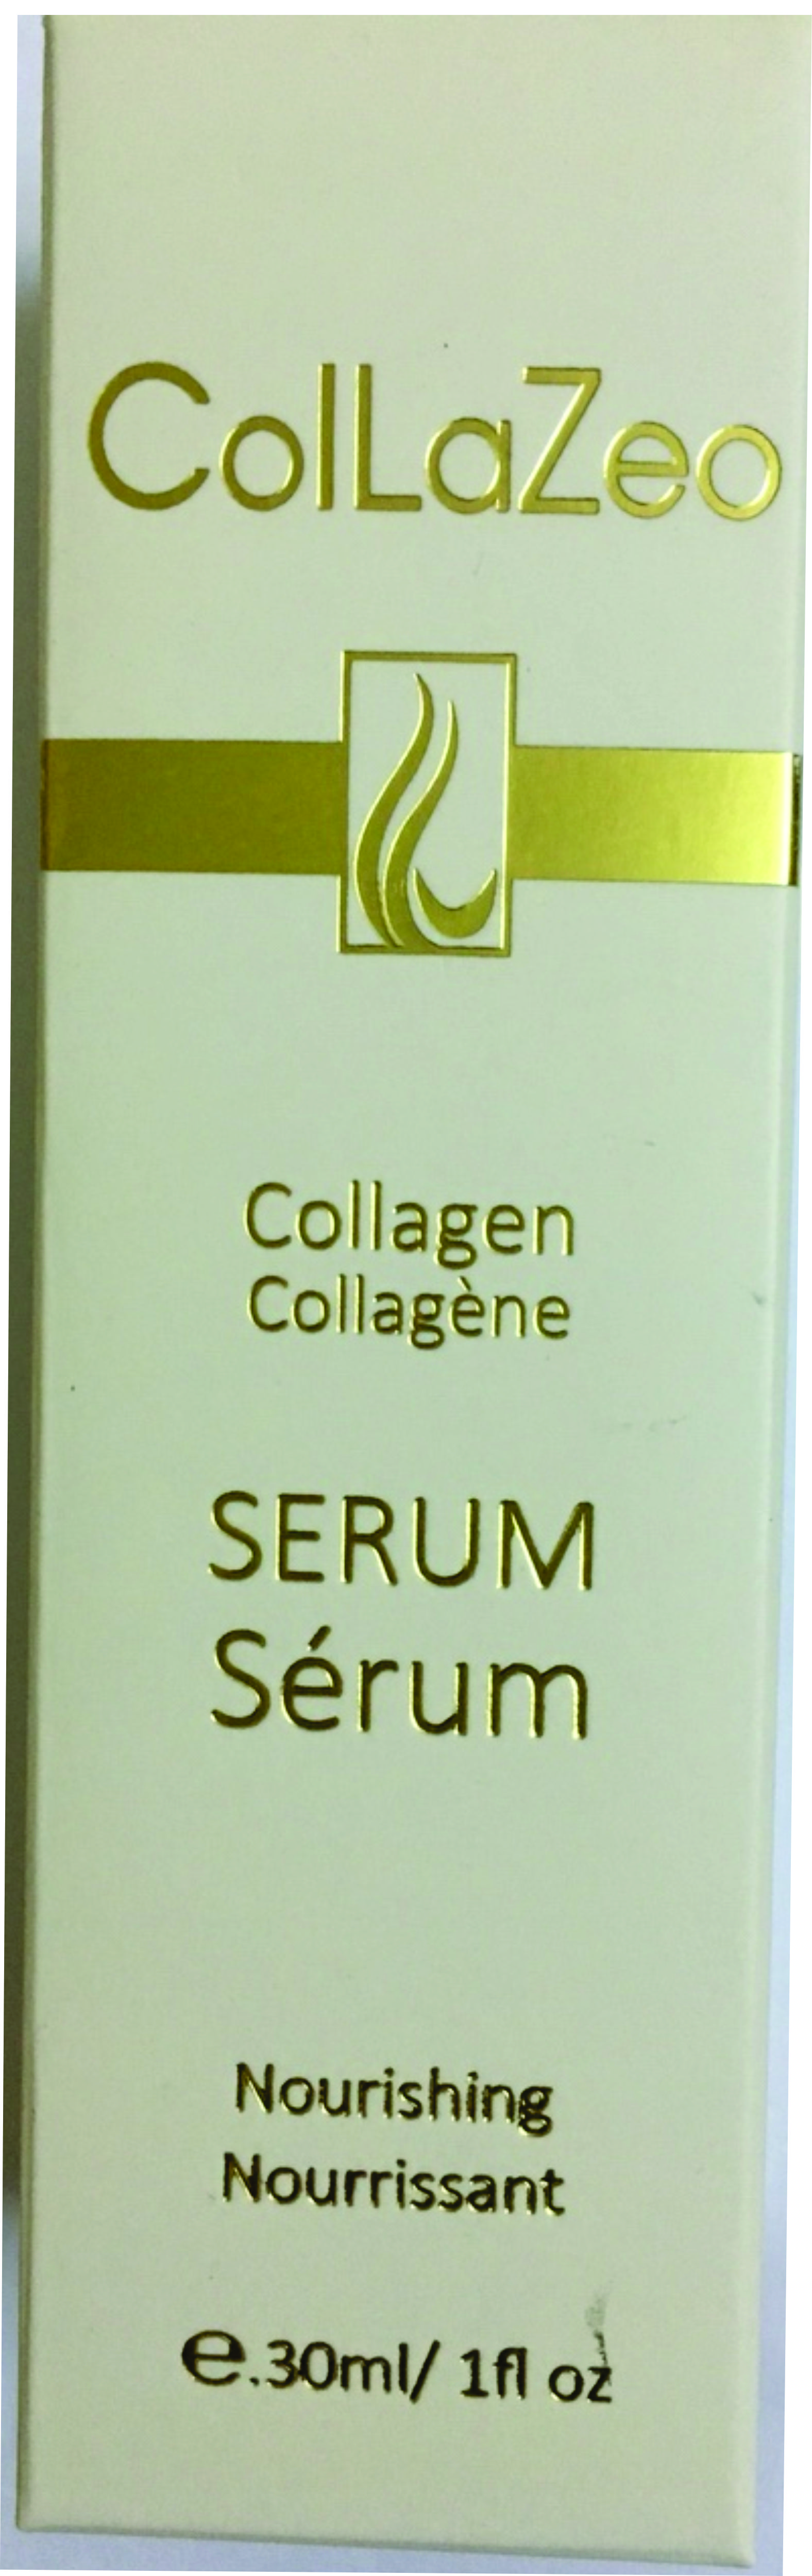 SERUM DƯỠNG DA COLLAGEO